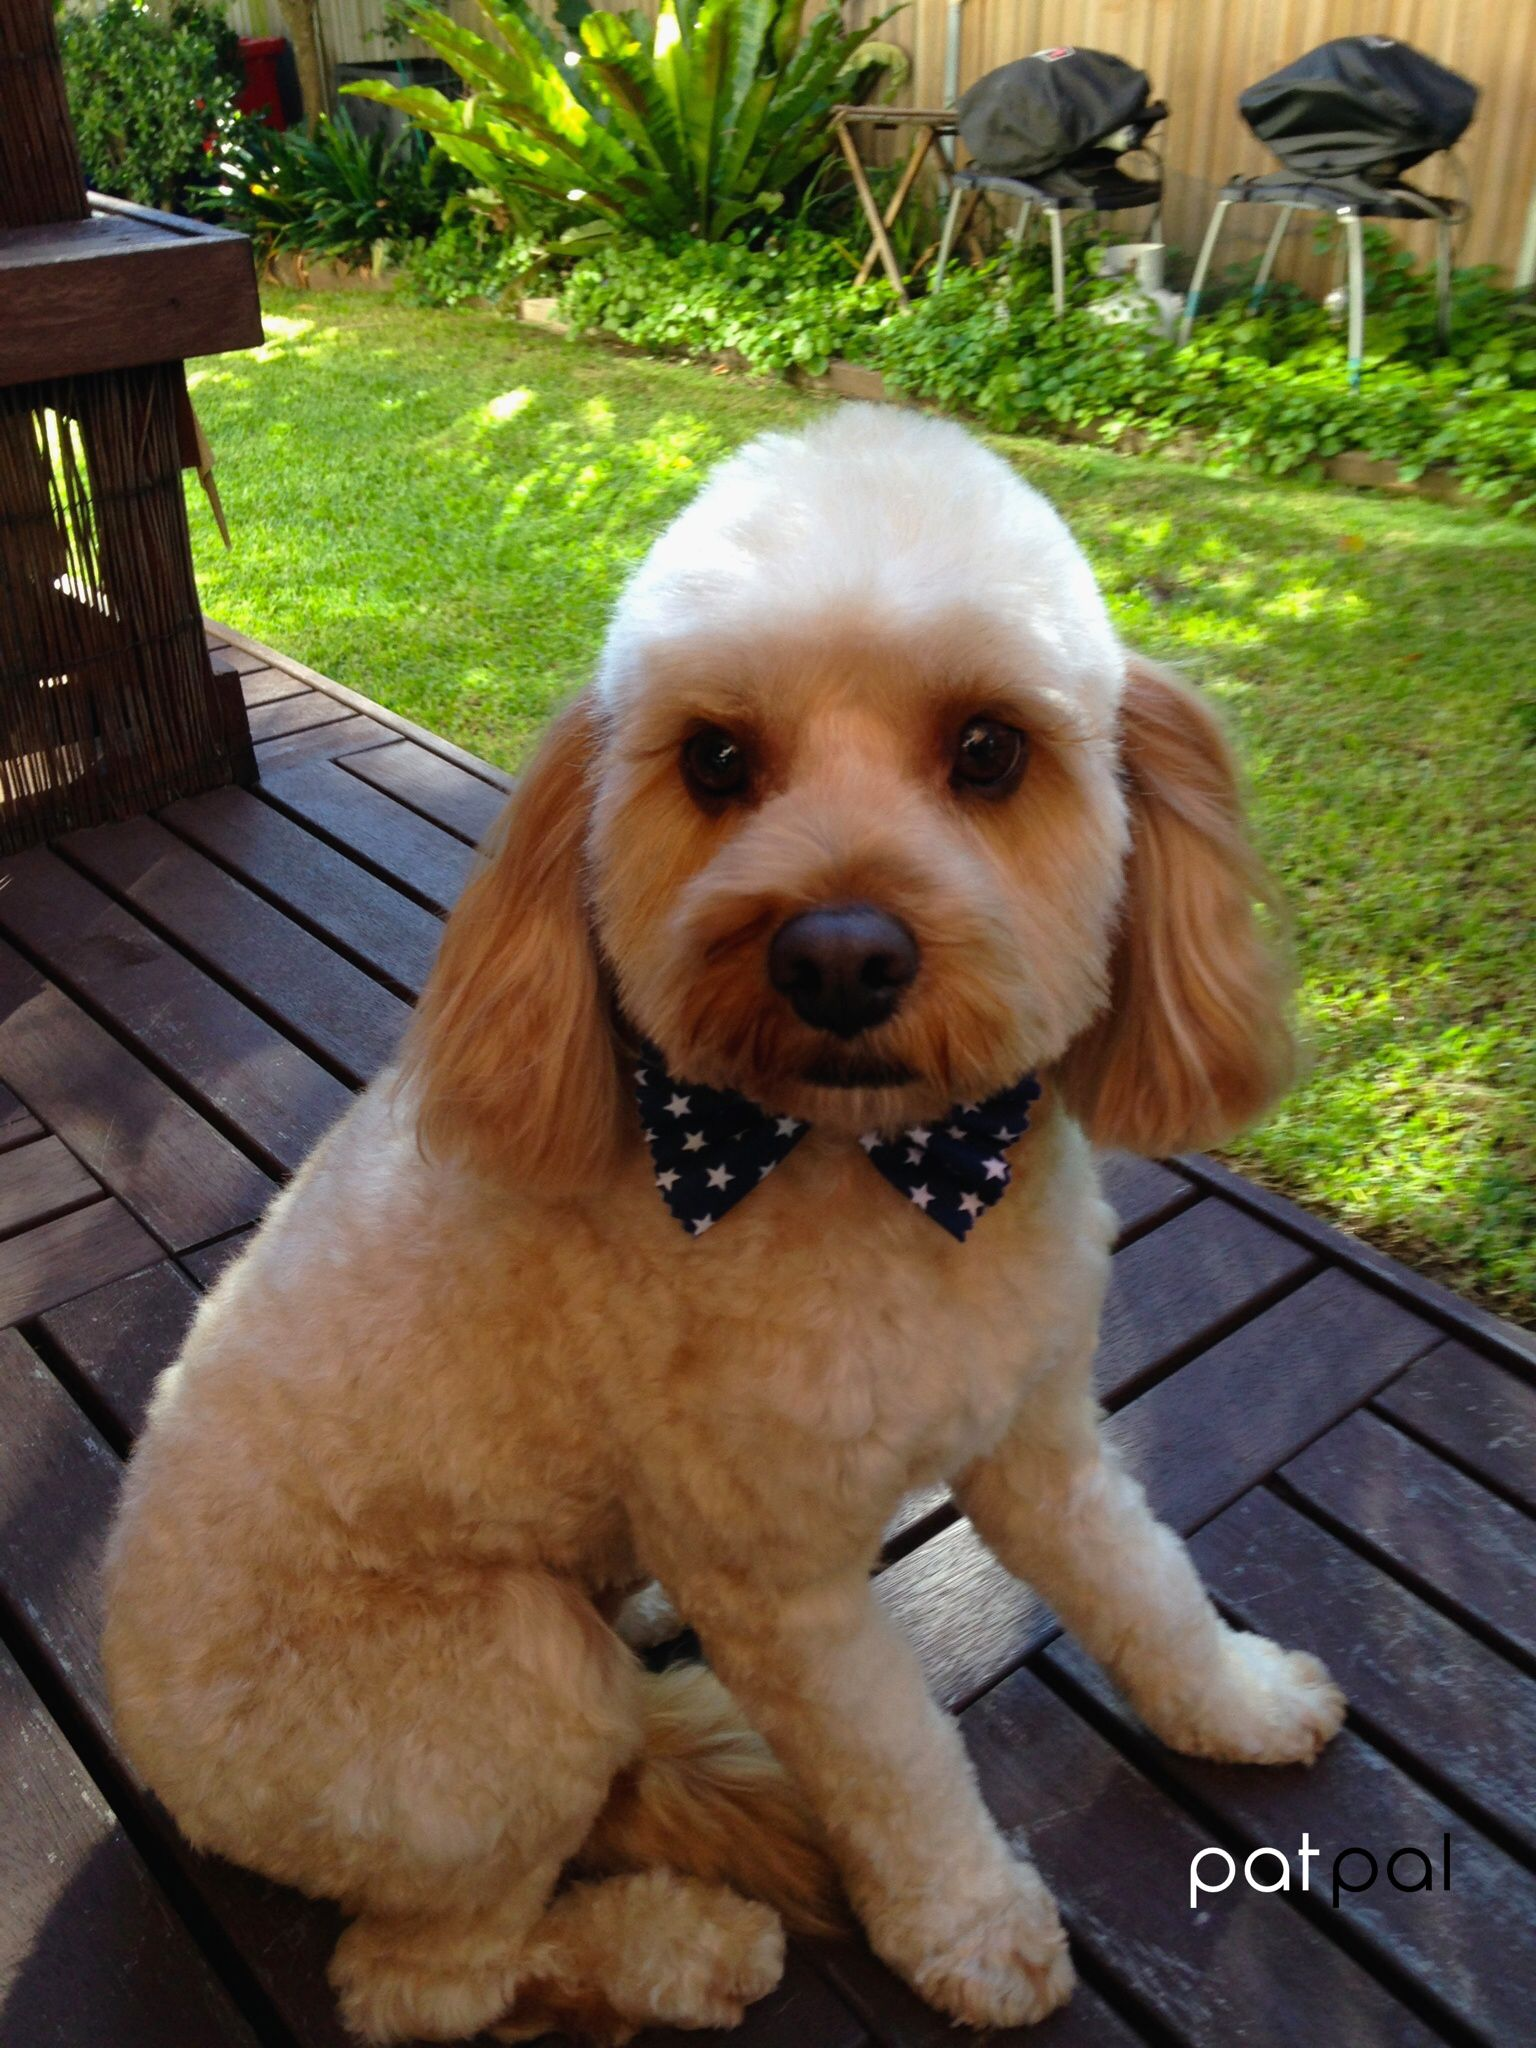 Cute Cavoodle at PatPal dog grooming, Willoughby, Sydney